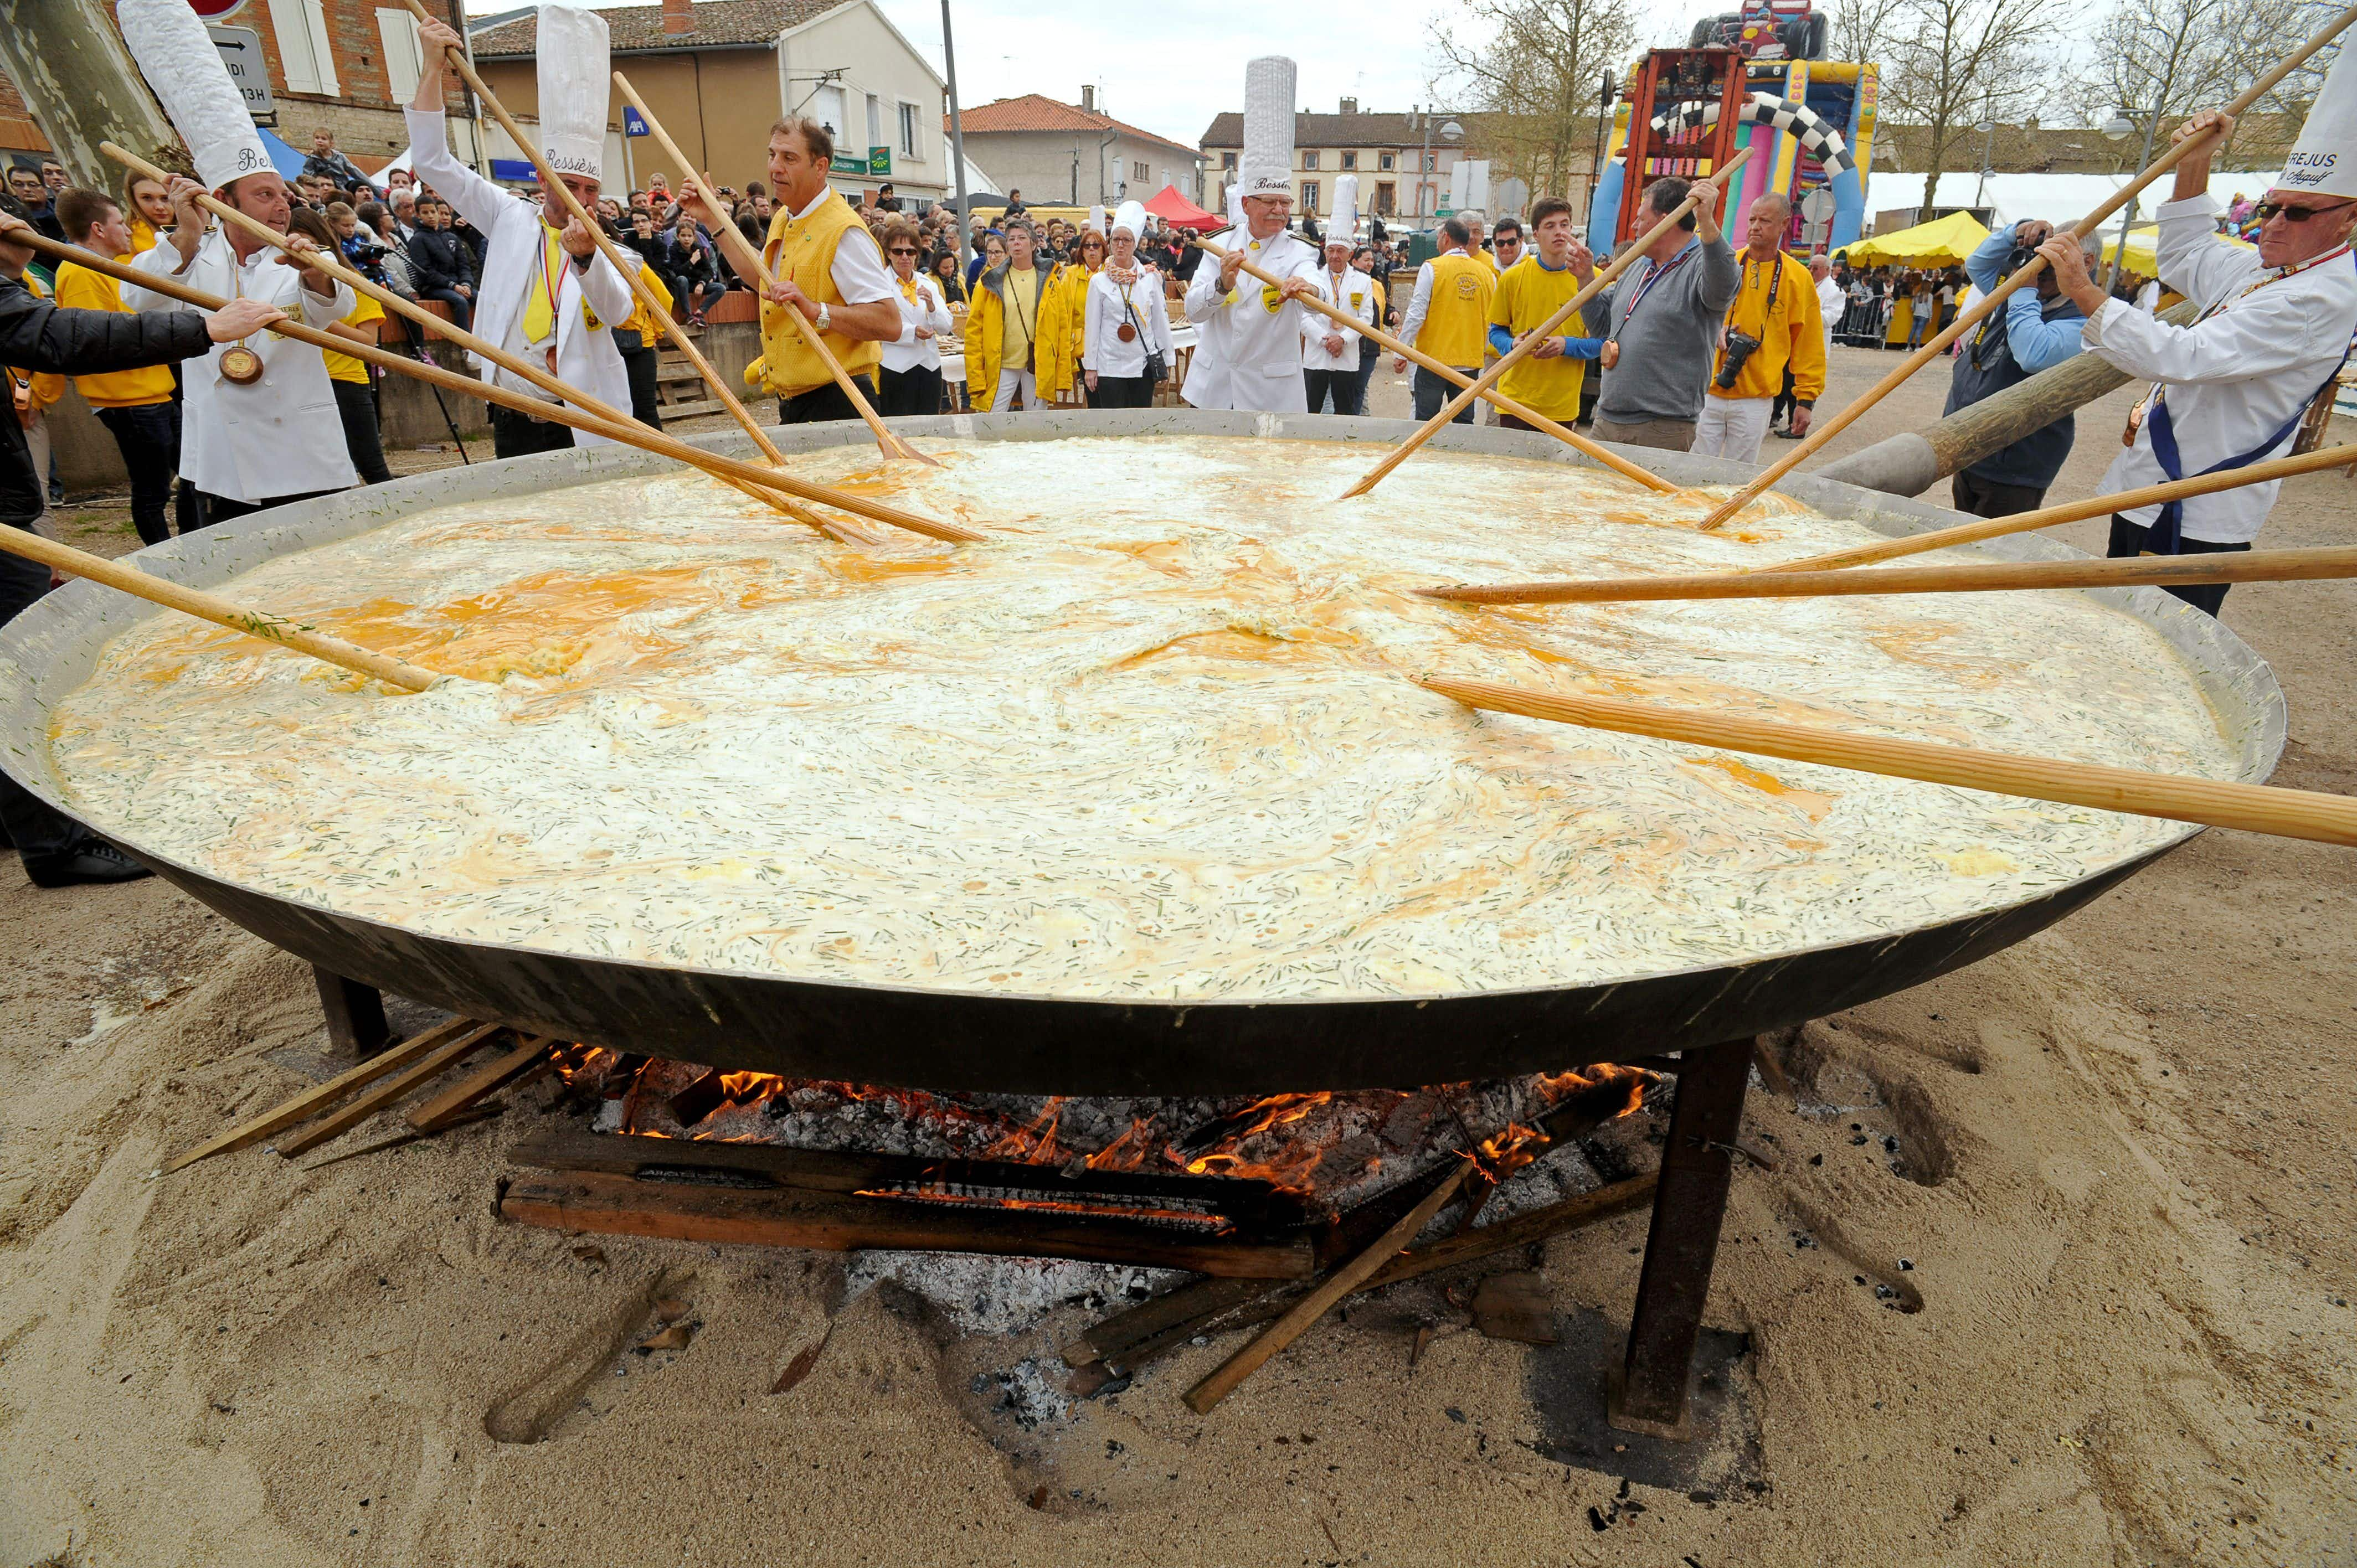 French village to make omelette with 15,000 eggs on Easter Monday